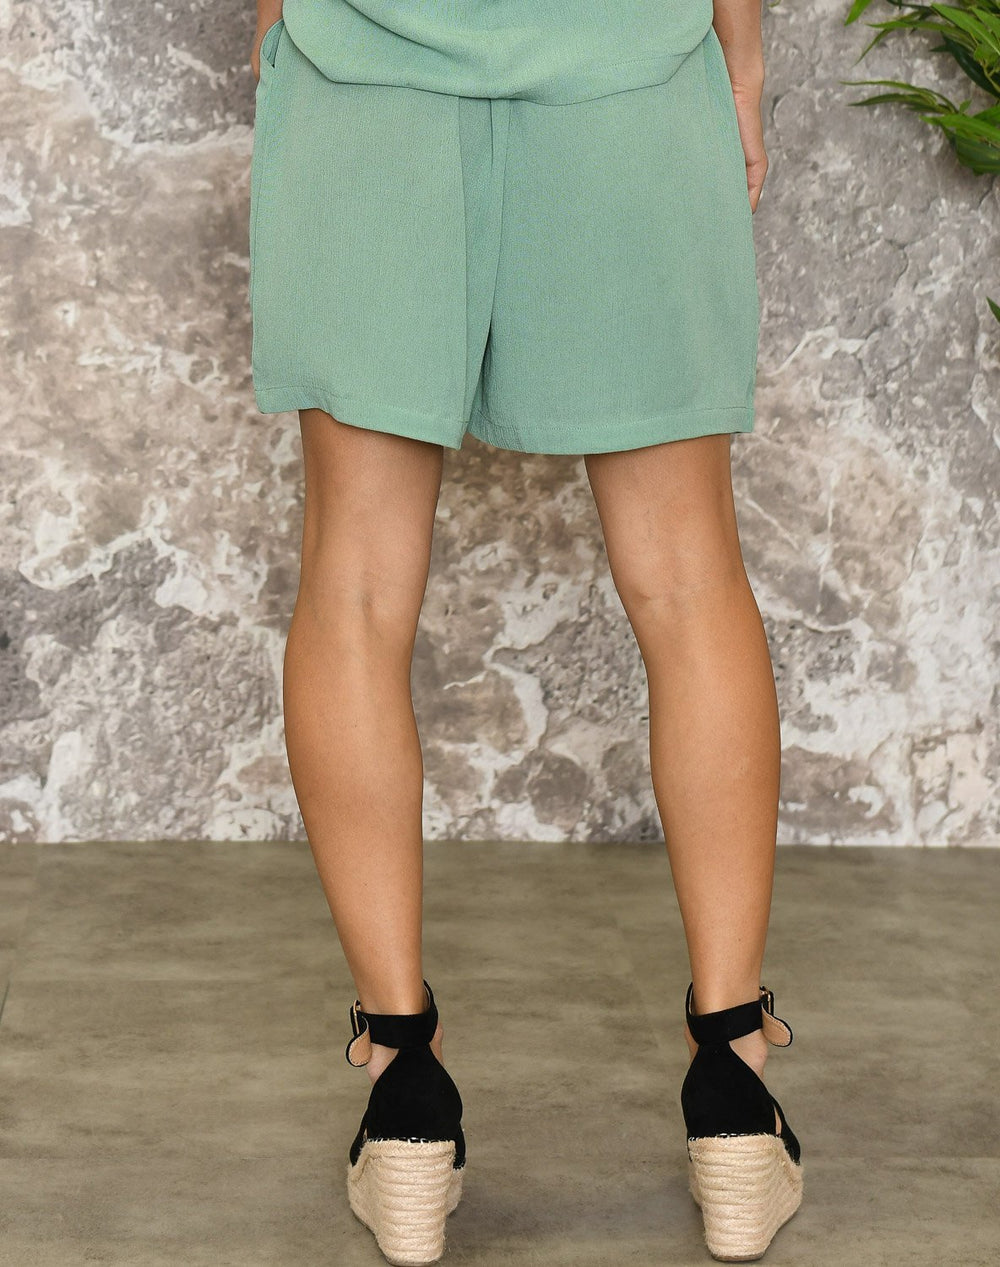 Ichi IHmarrakech shorts 3 malachite green - Online-Mode